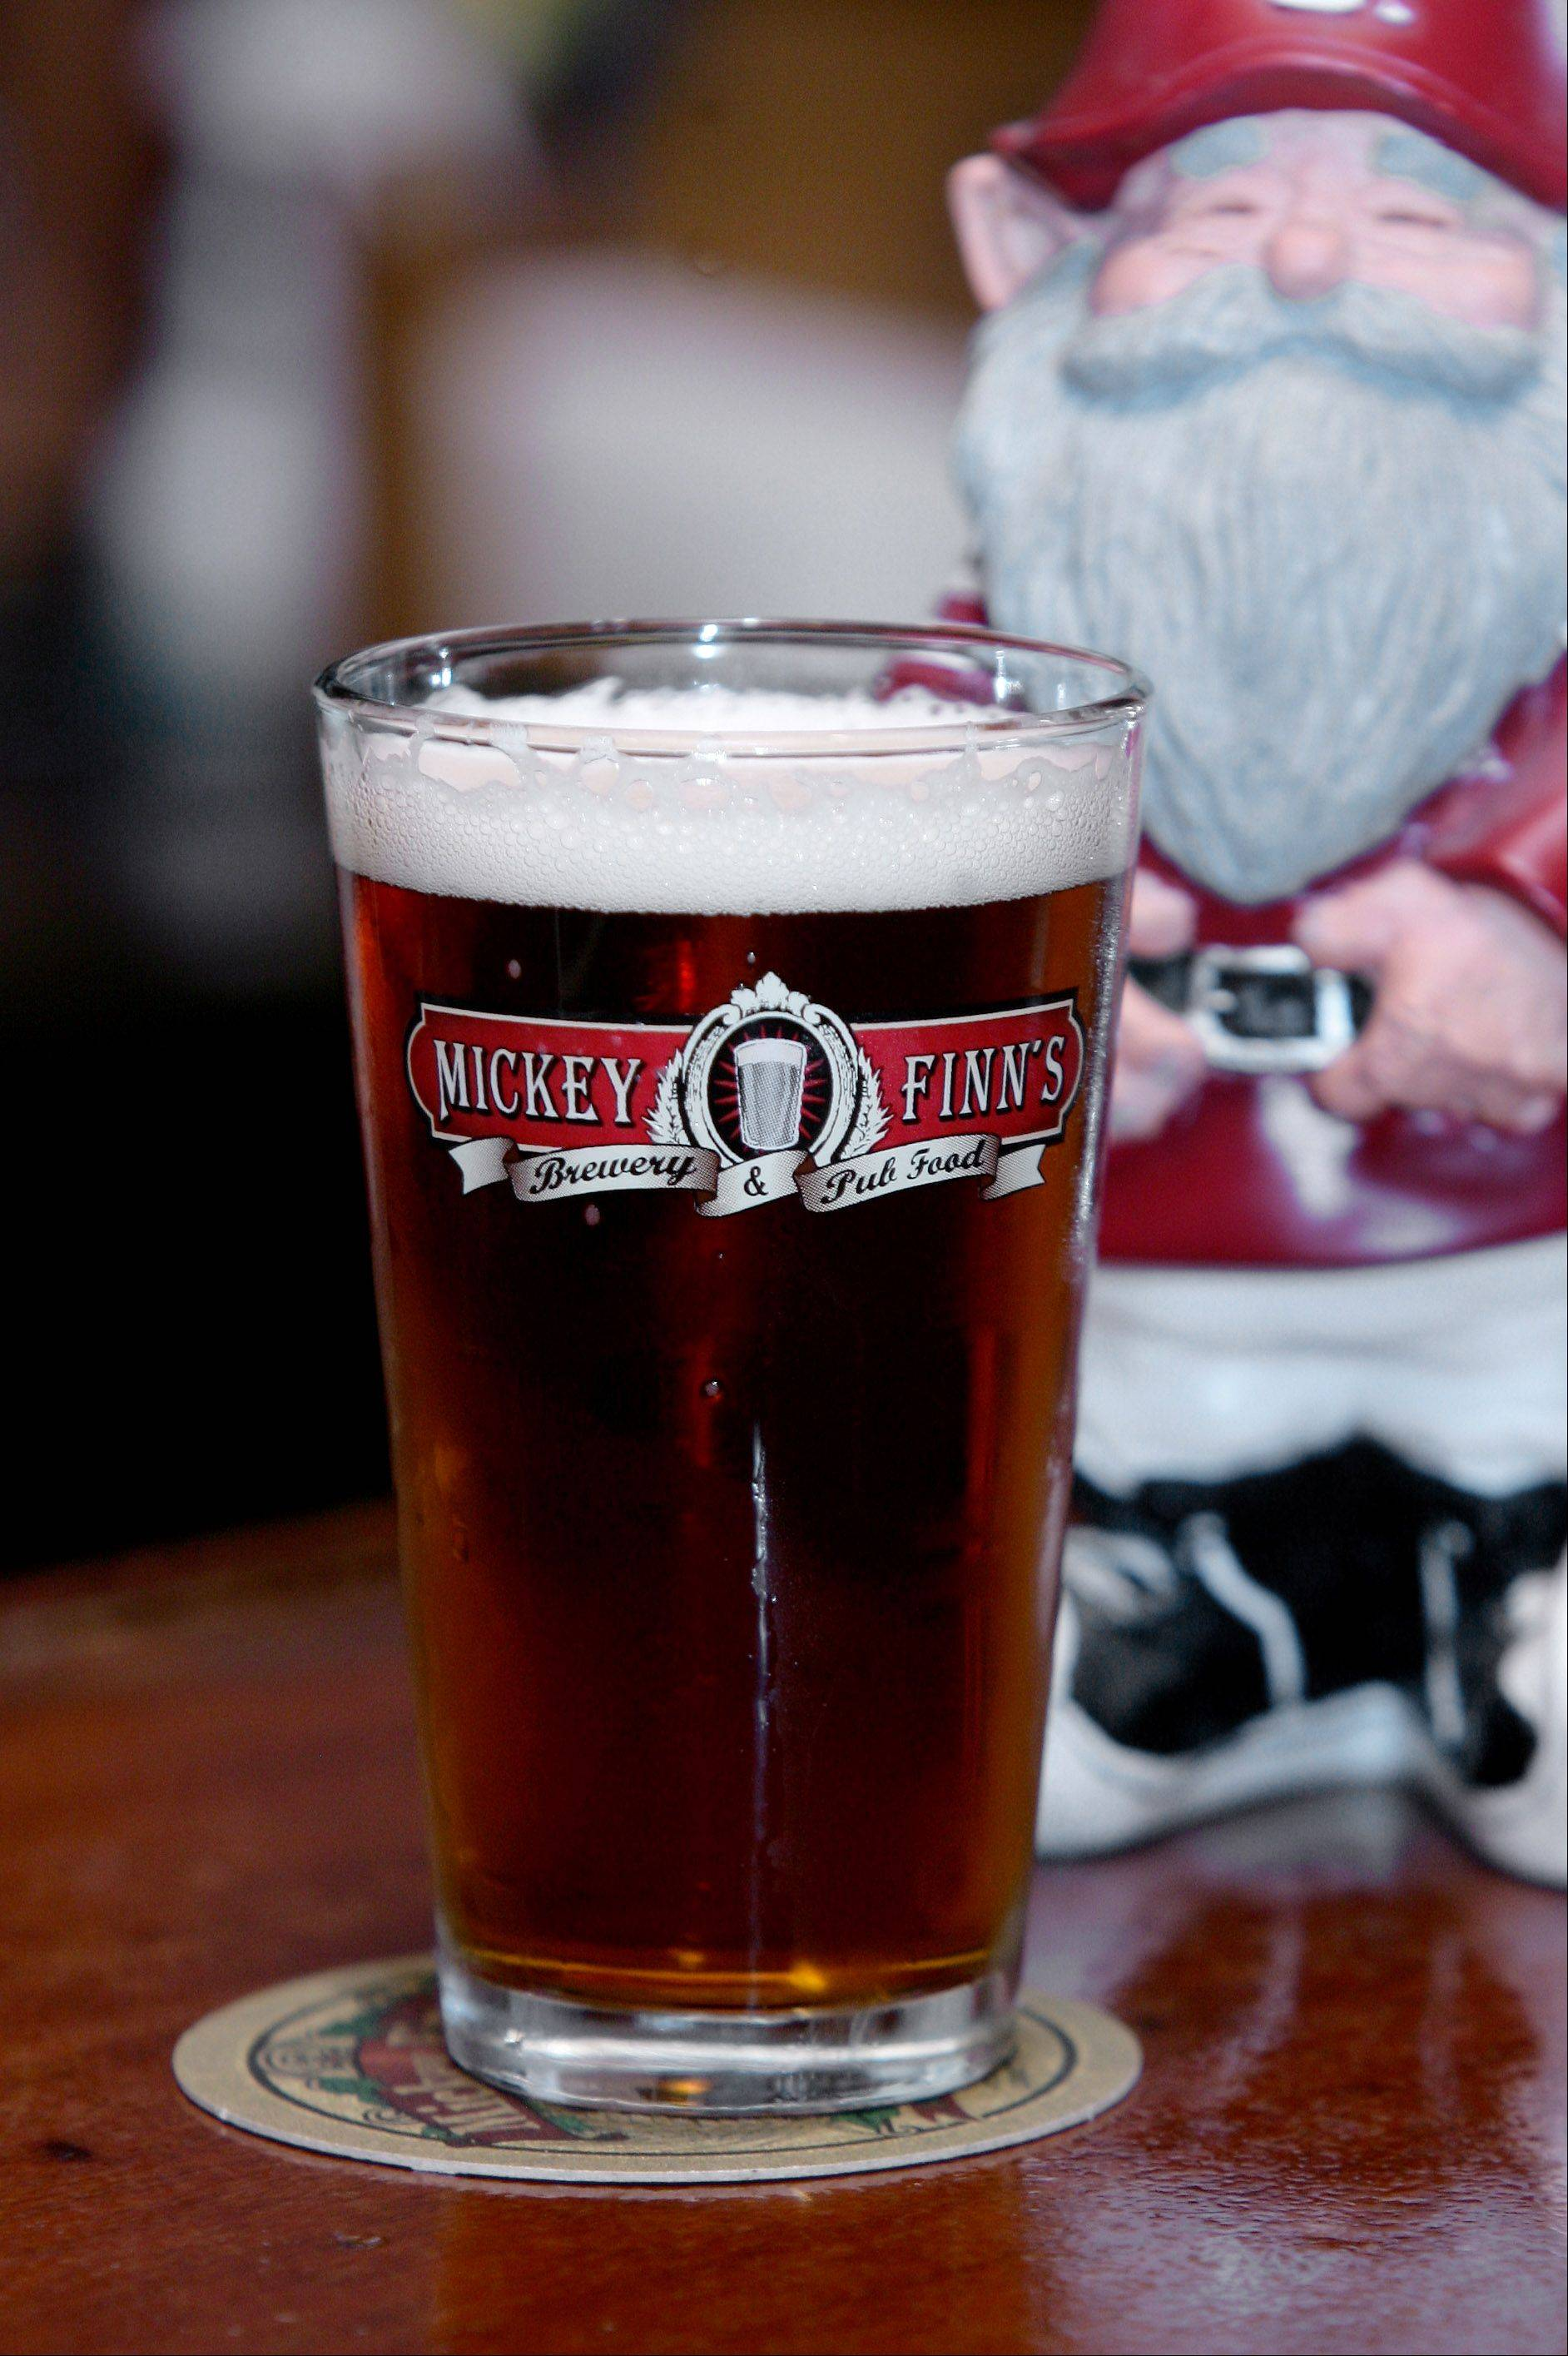 Known for a wide variety of small brews, Mickey Finn's in Libertyville releases Santa's Magic, its most popular creation, on the day after Thanksgiving.